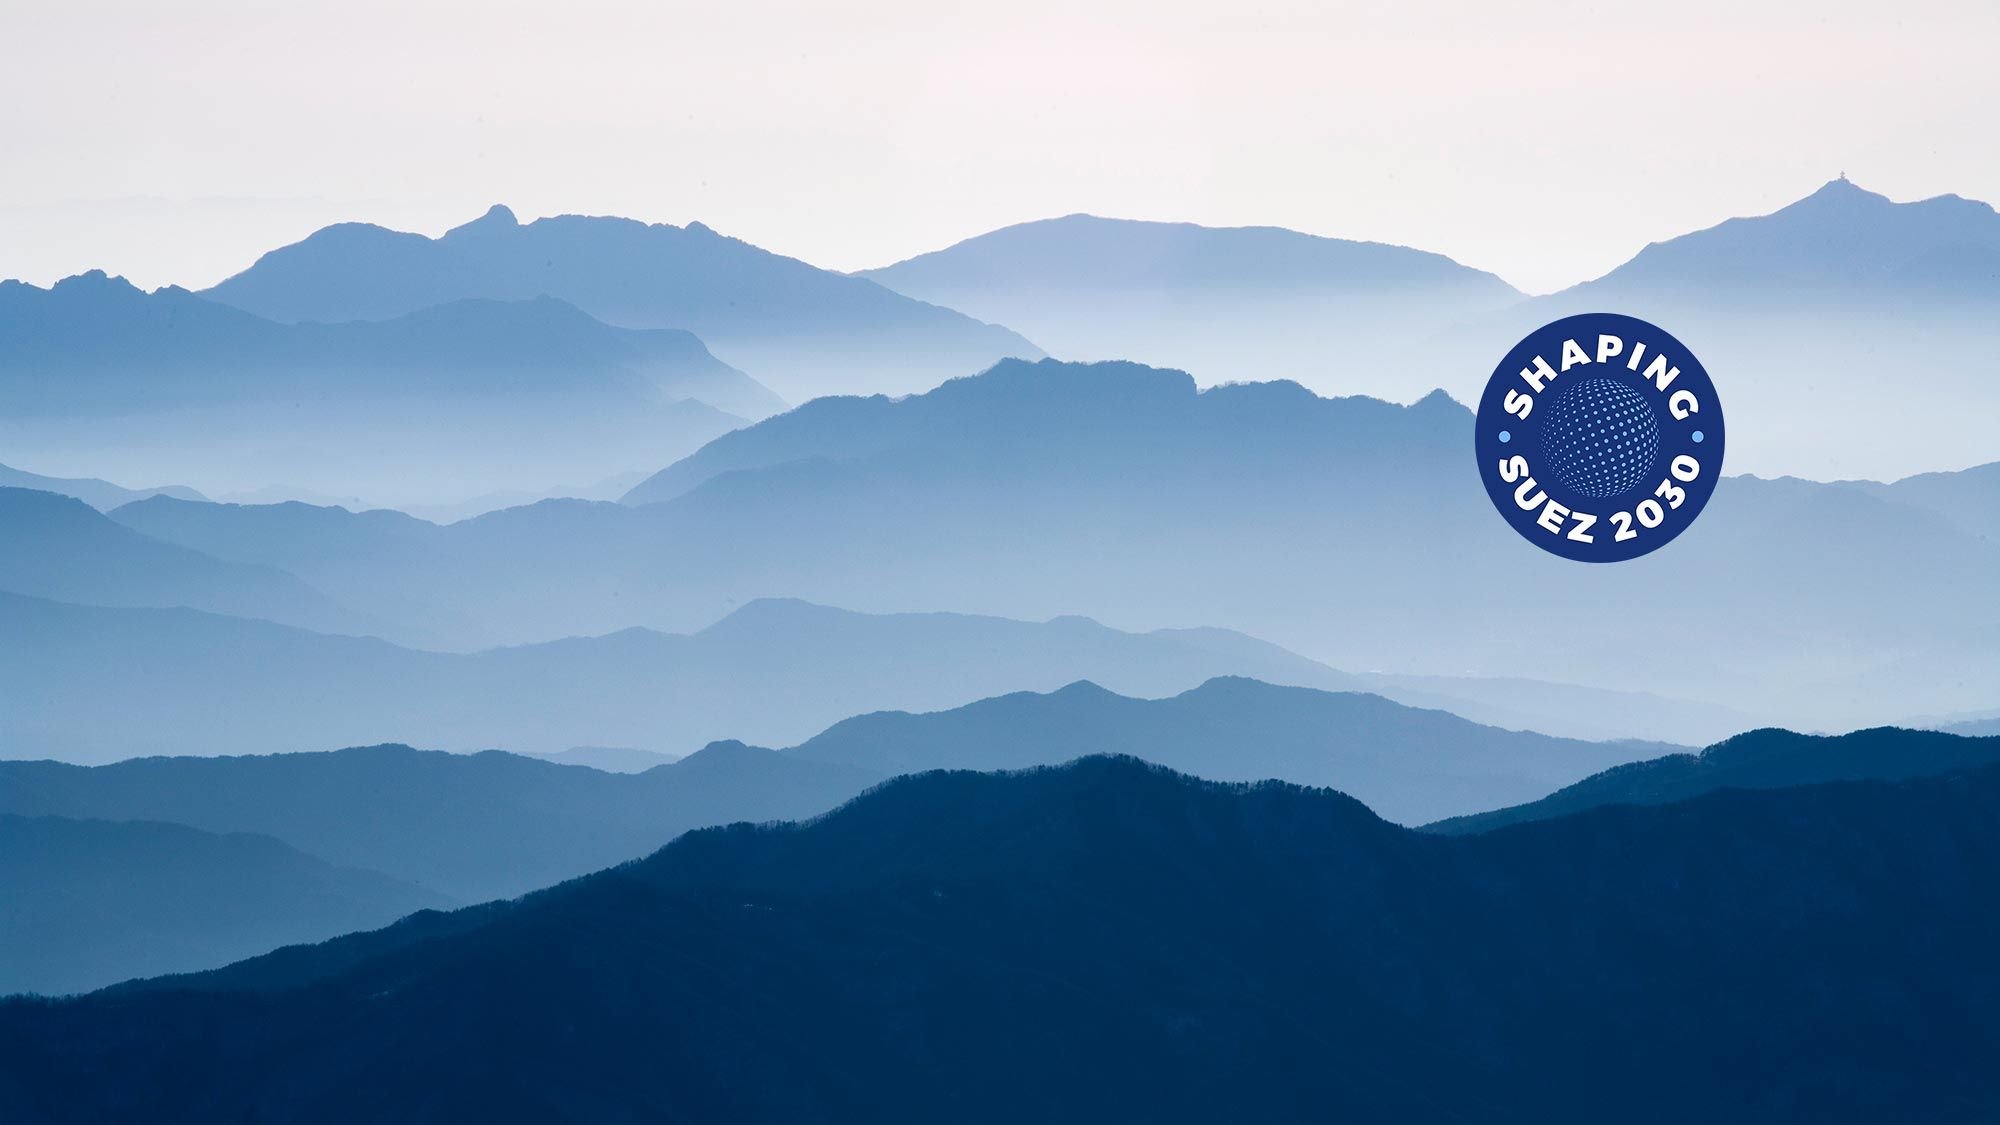 blue-mountains-logo-5